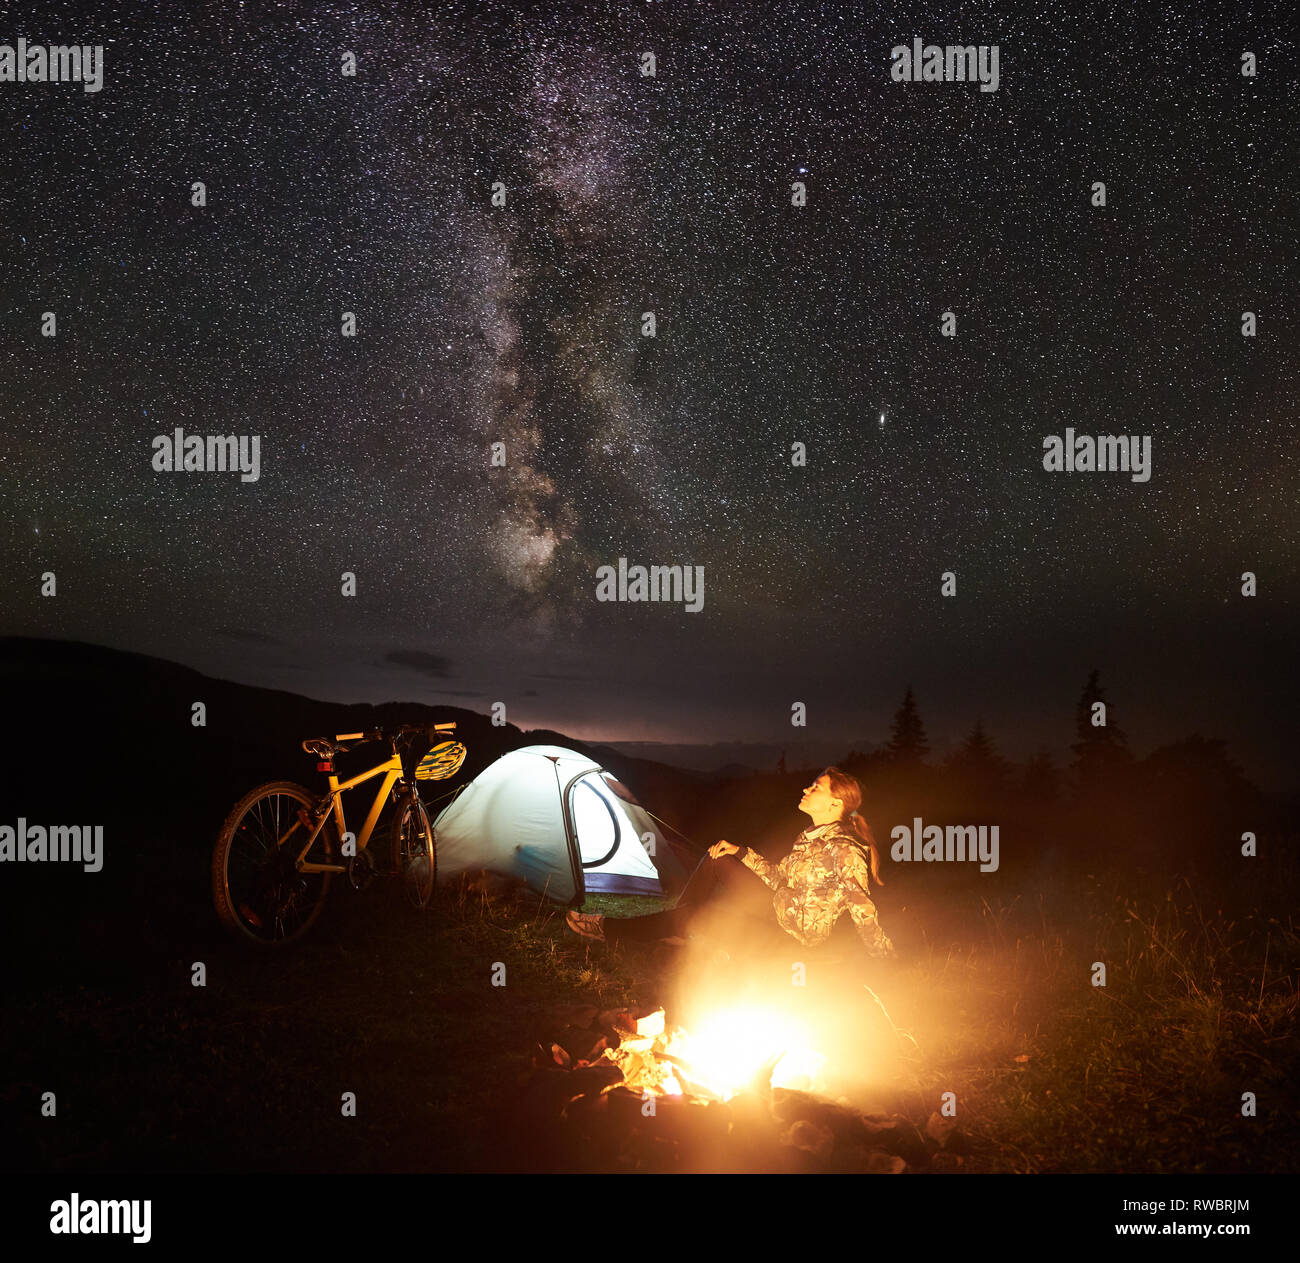 Young woman tourist enjoying at night camping near burning campfire, illuminated tourist tent, mountain bicycle under amazing beautiful evening sky full of stars and Milky way. Astrophotography - Stock Image